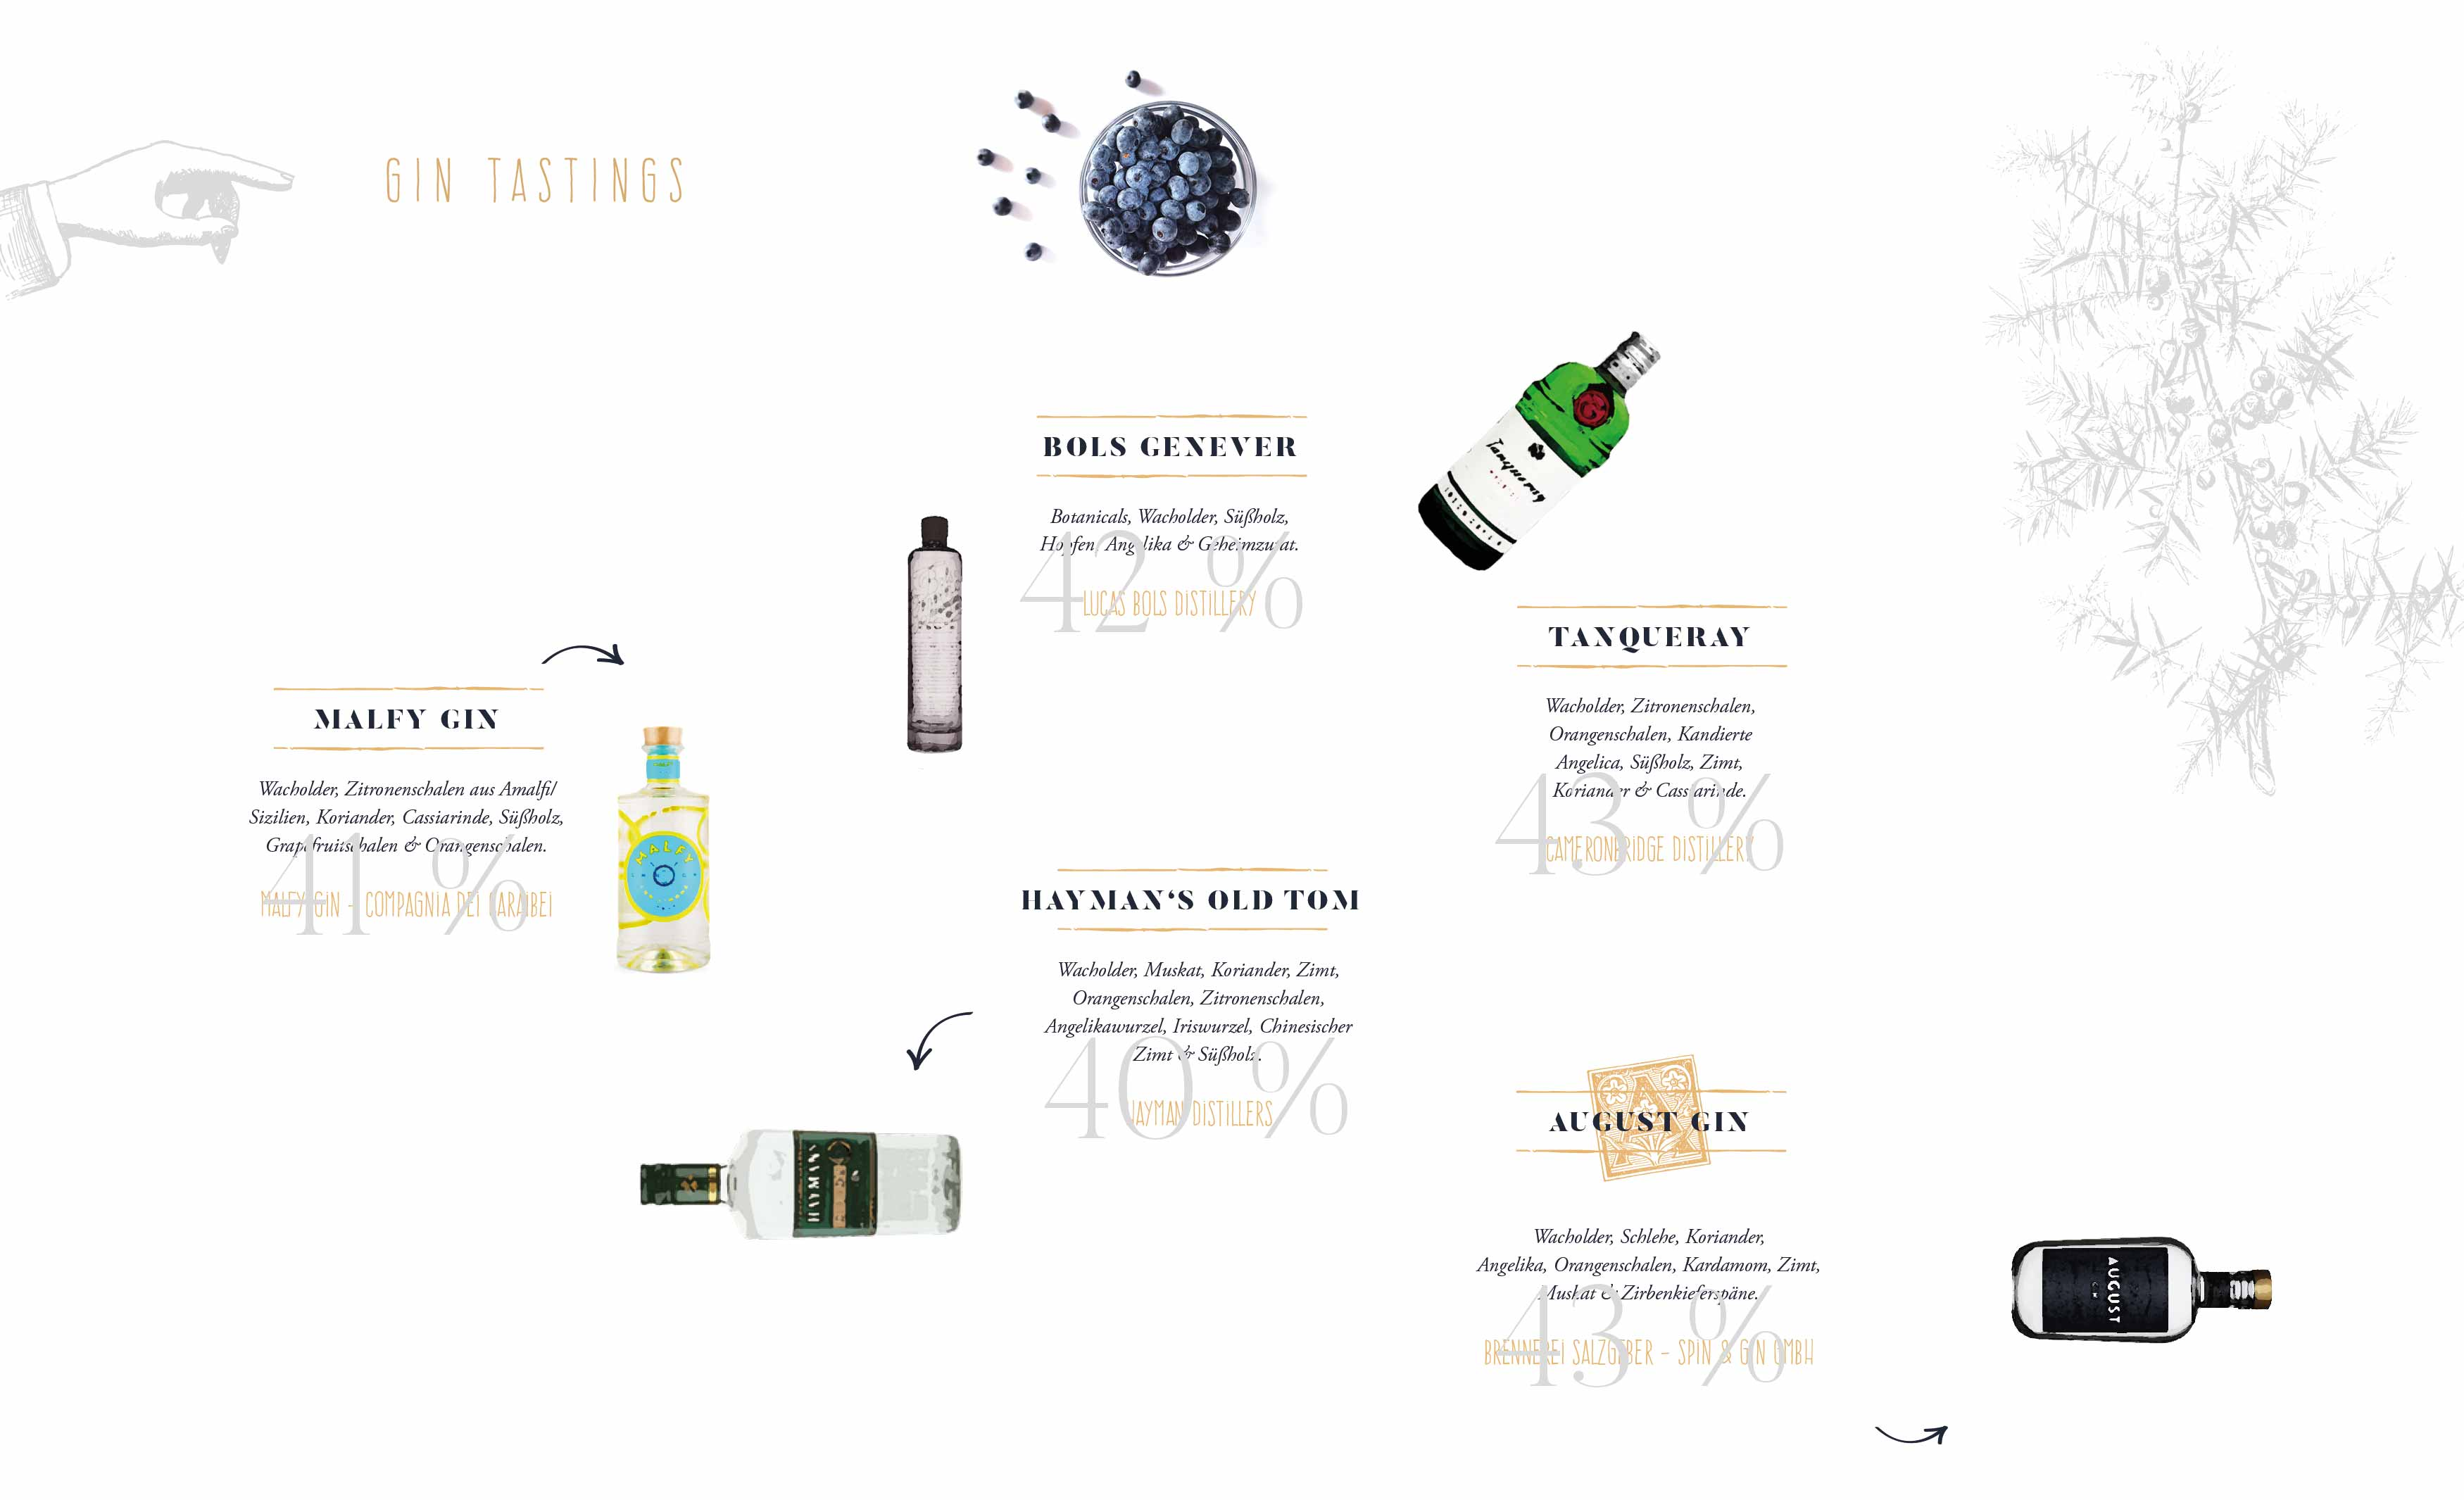 7-gin-tastings-august-gin-augsburg-design-branding